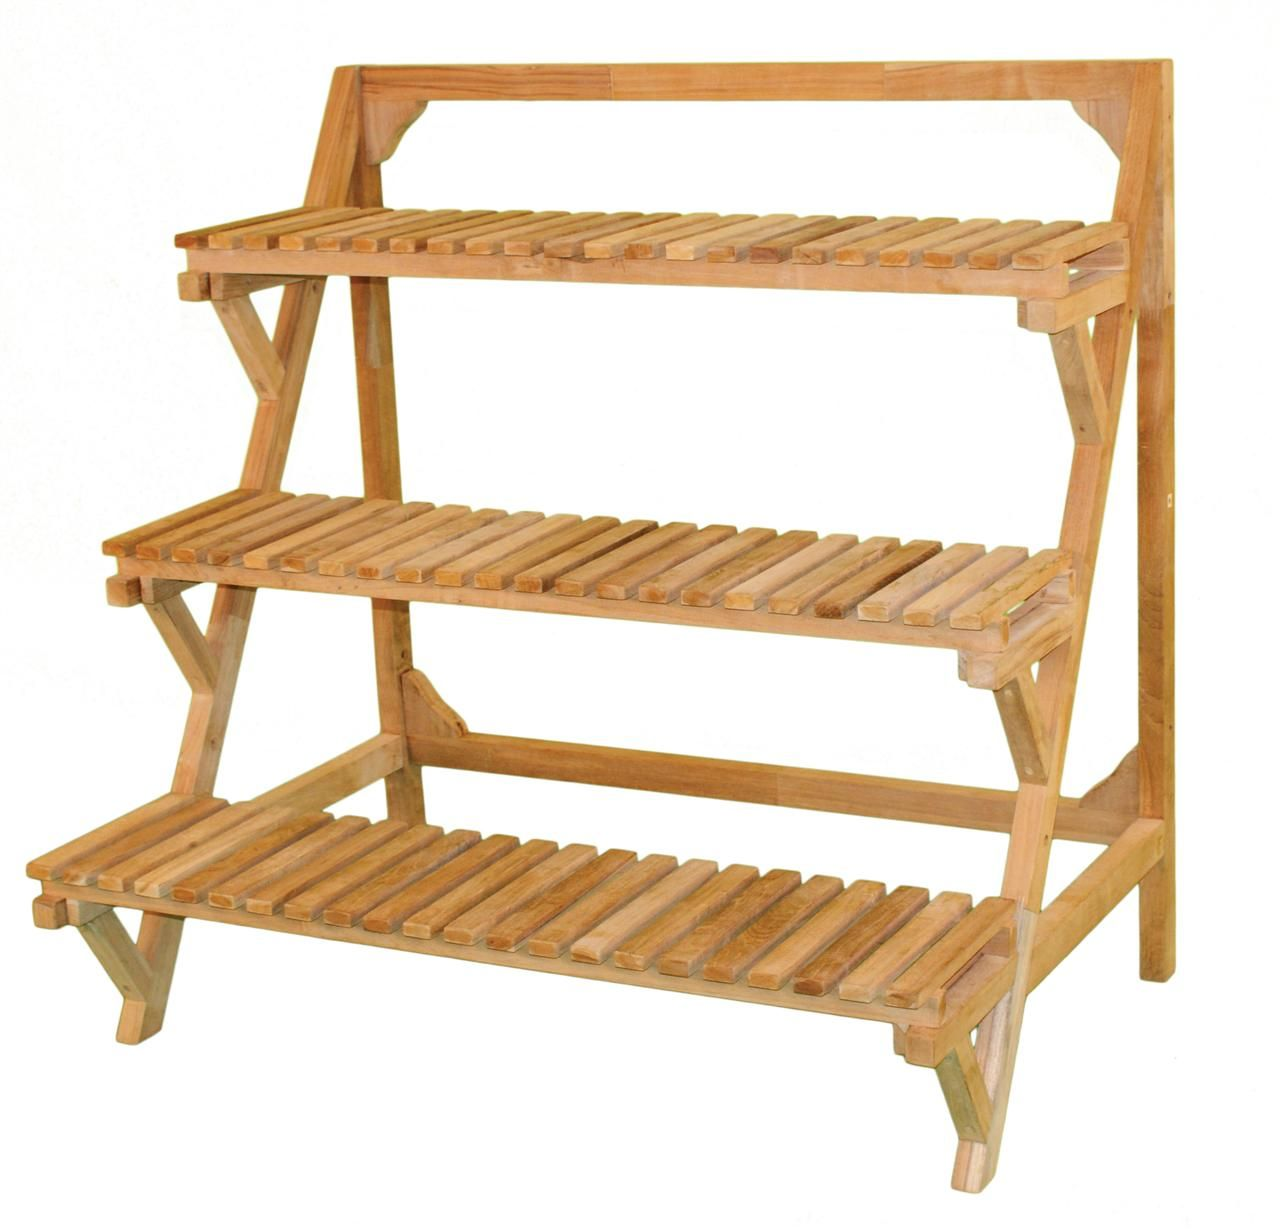 Plant Shelving Indoor Tiered Outdoor Indoor Plant Stand Eucalyptus Wood Patio